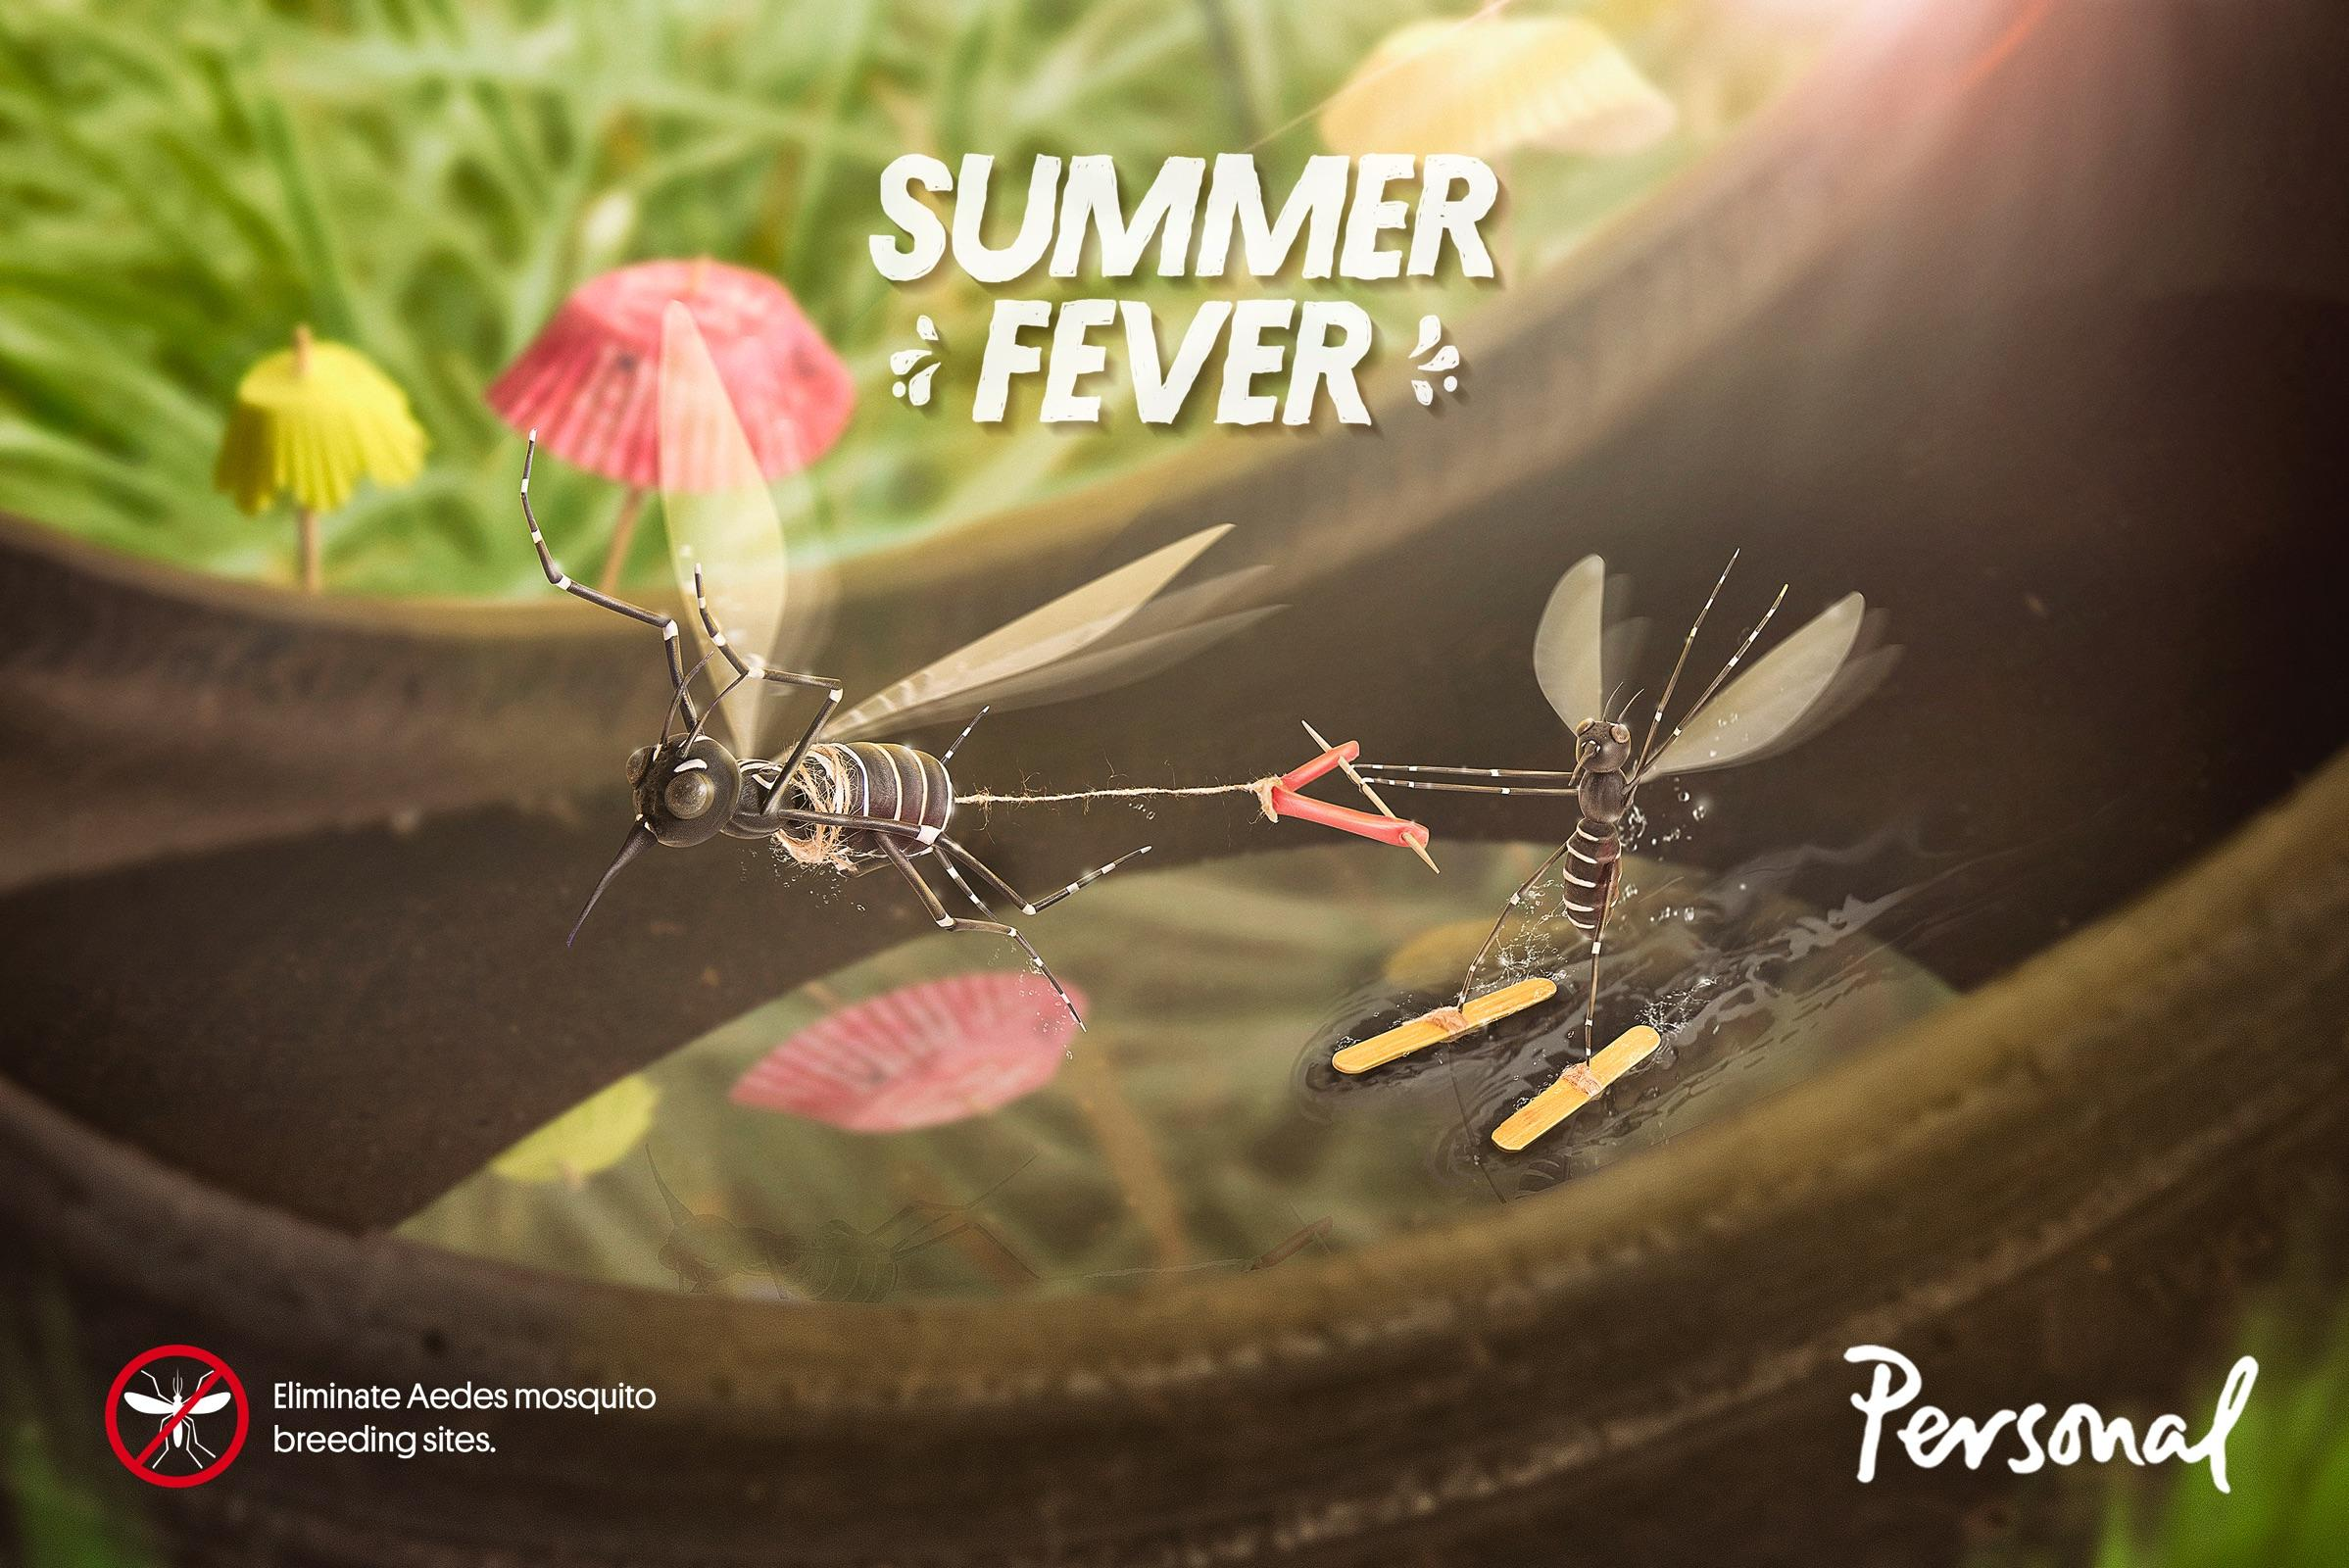 Personal Outdoor Ad - Summer Fever, 4